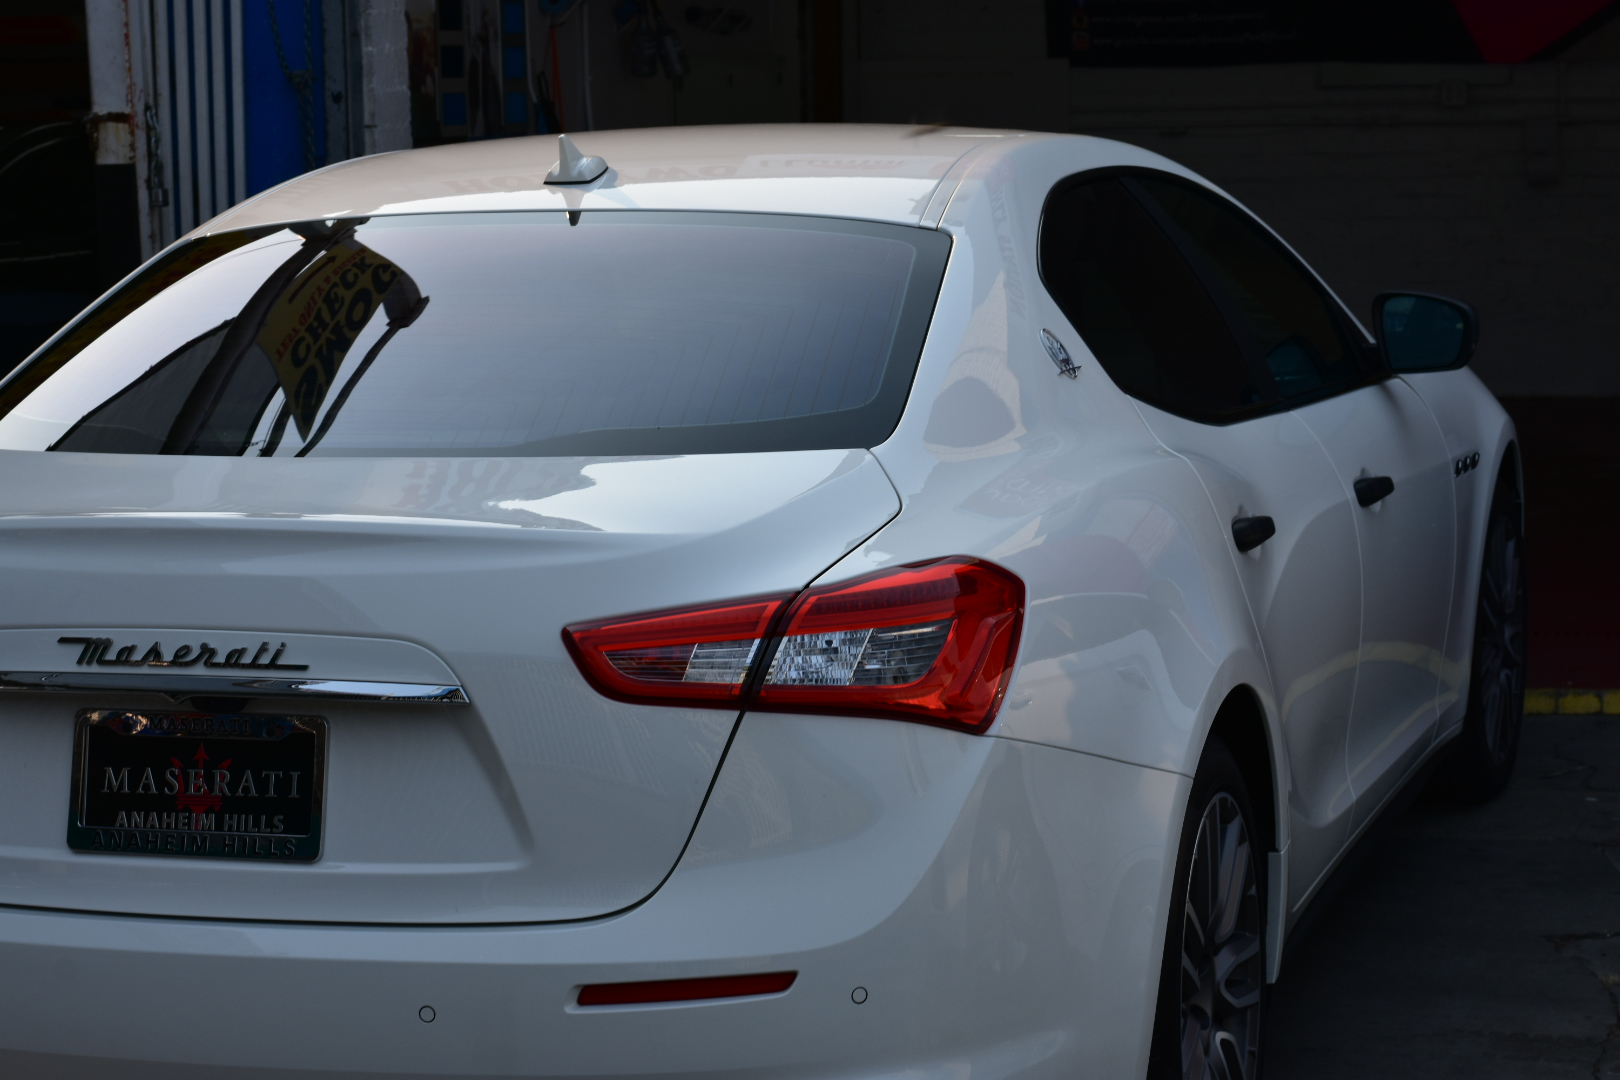 3M crystalline window film, window tint, llumar window film